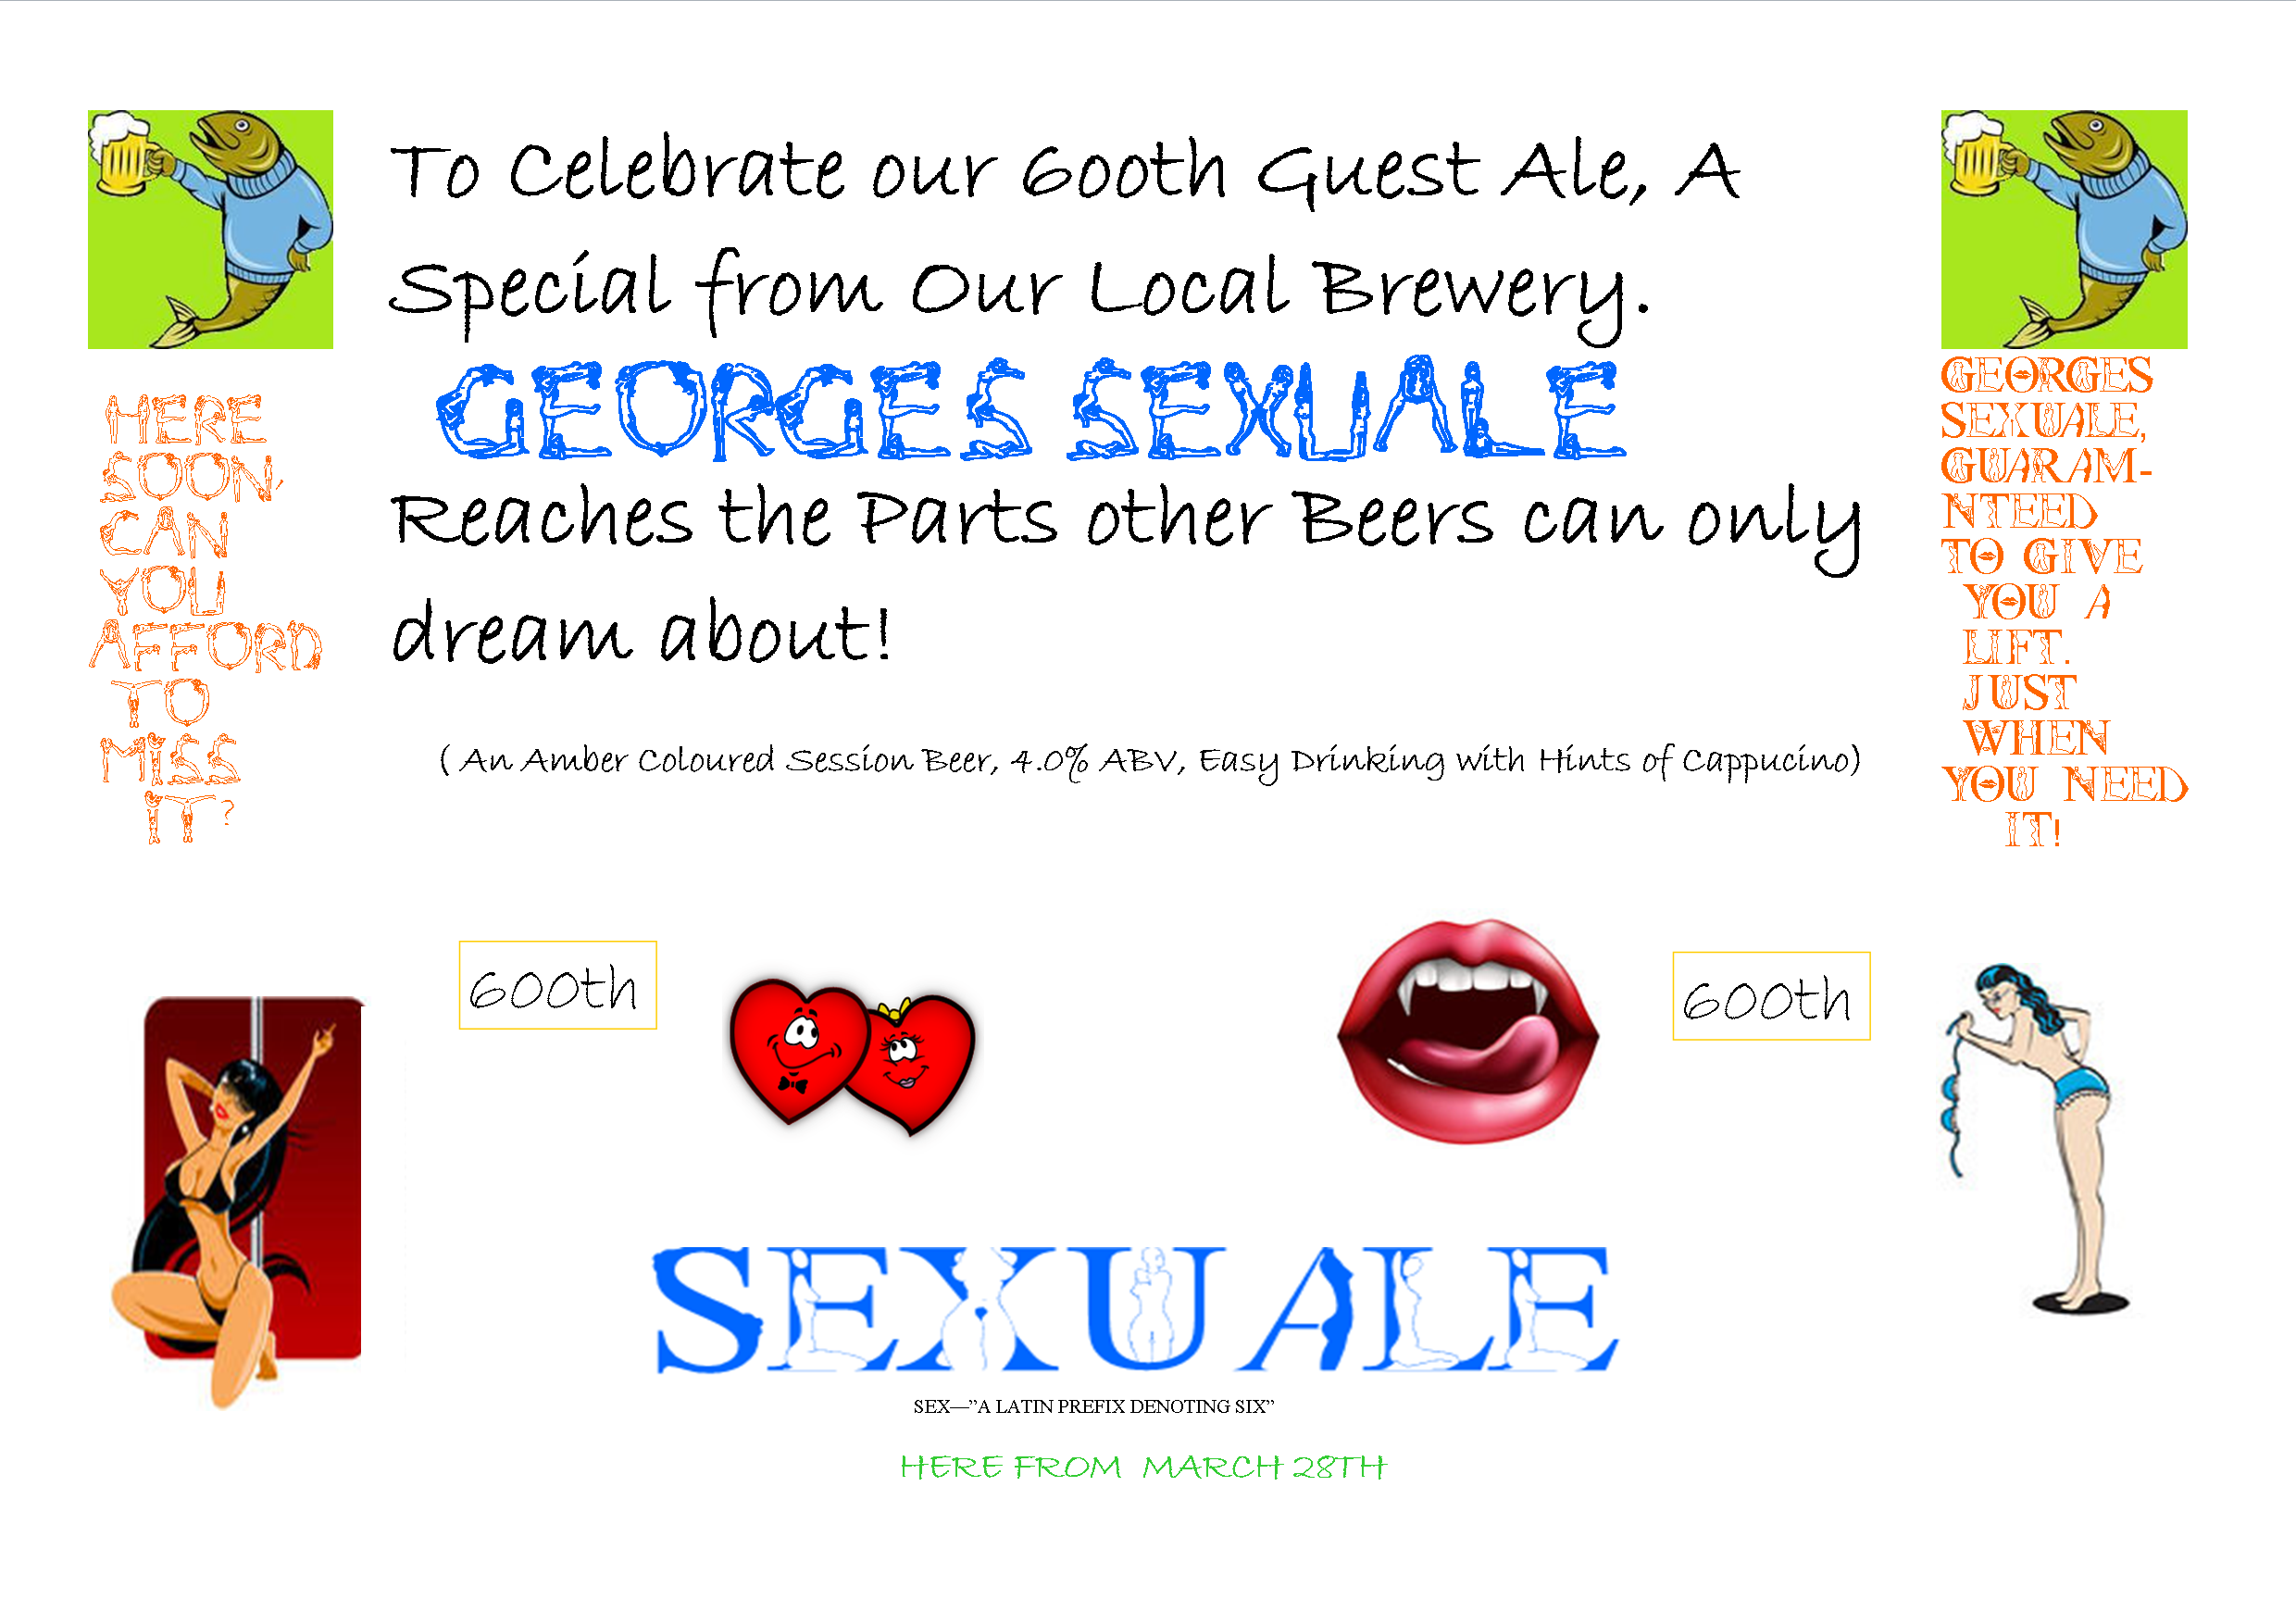 George's Sexuale 600th Guest Ale Celebration